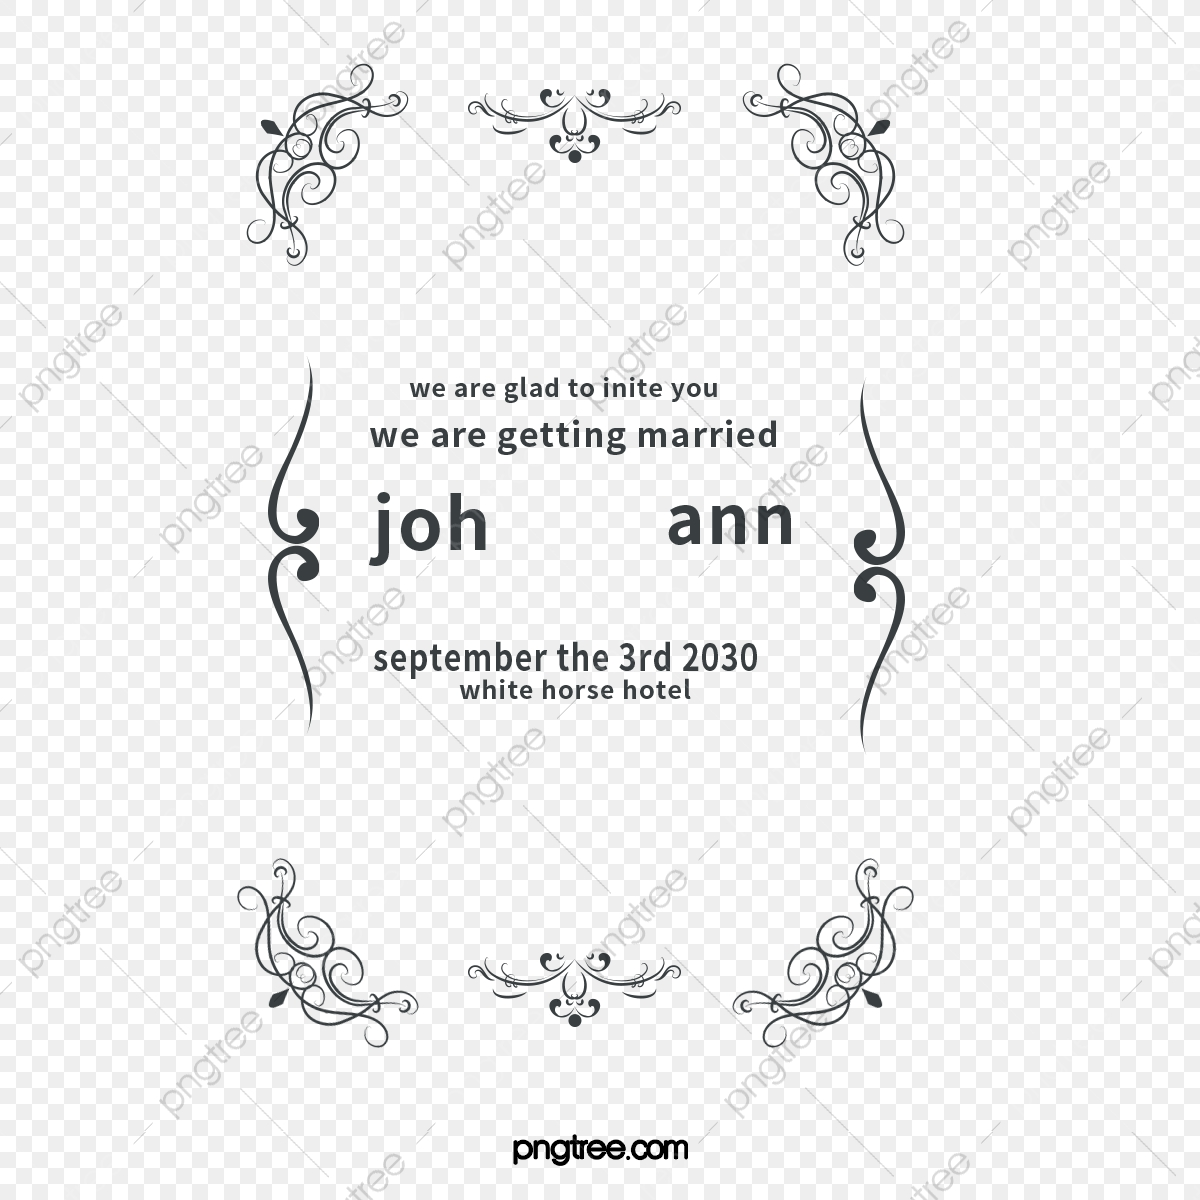 Wedding Invitation Border Marry Ceremony Invite Png And Vector